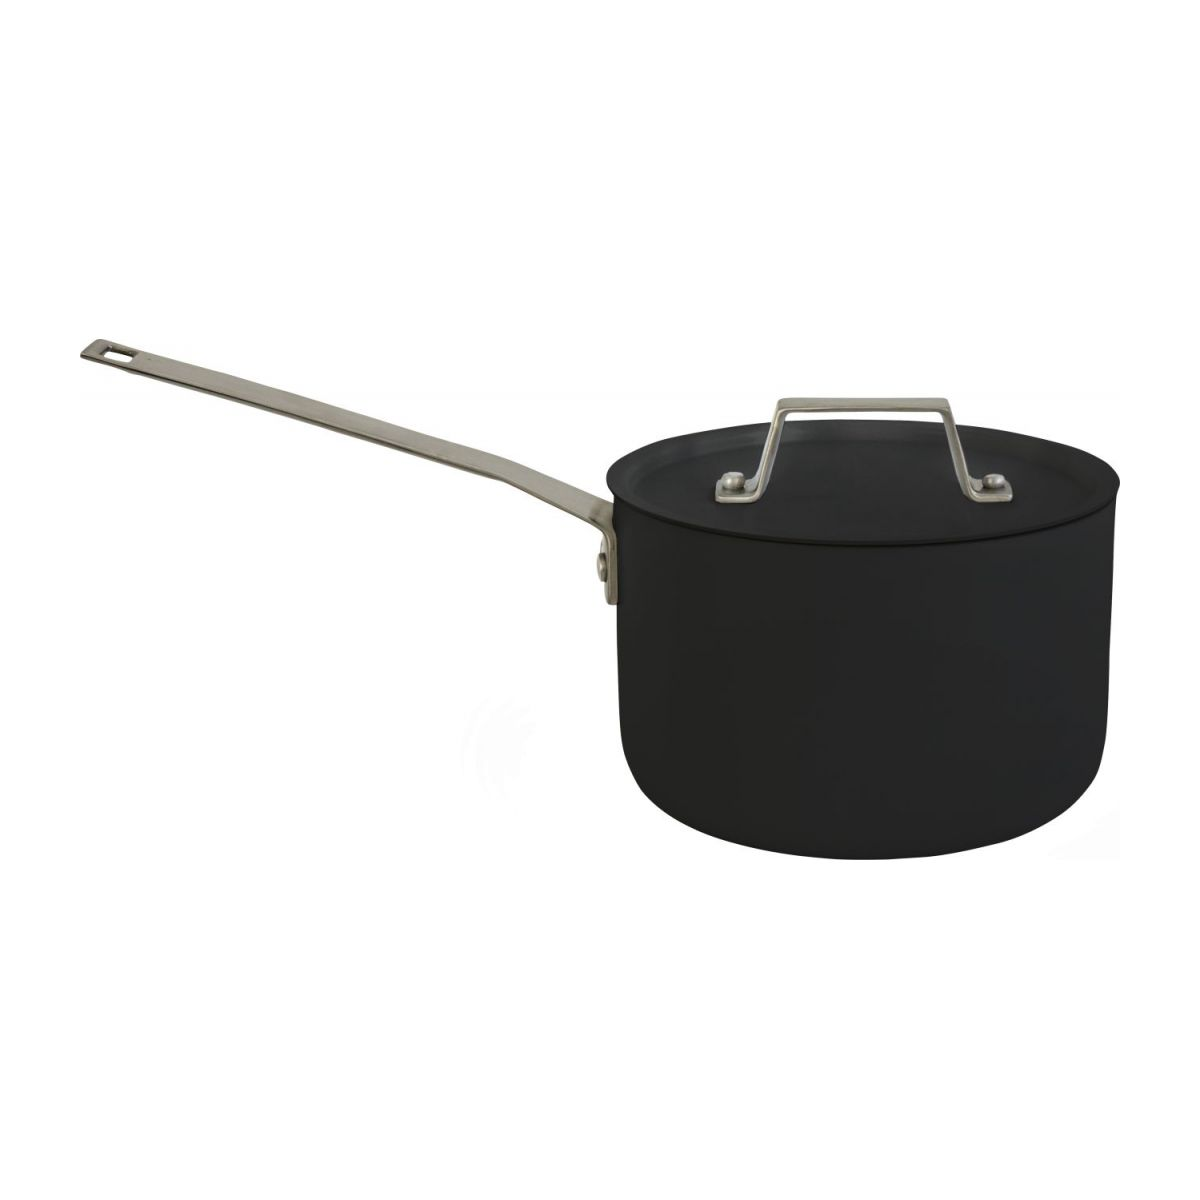 Aluminium saucepan and lid 18 cm with inner coating in Teflon n°1